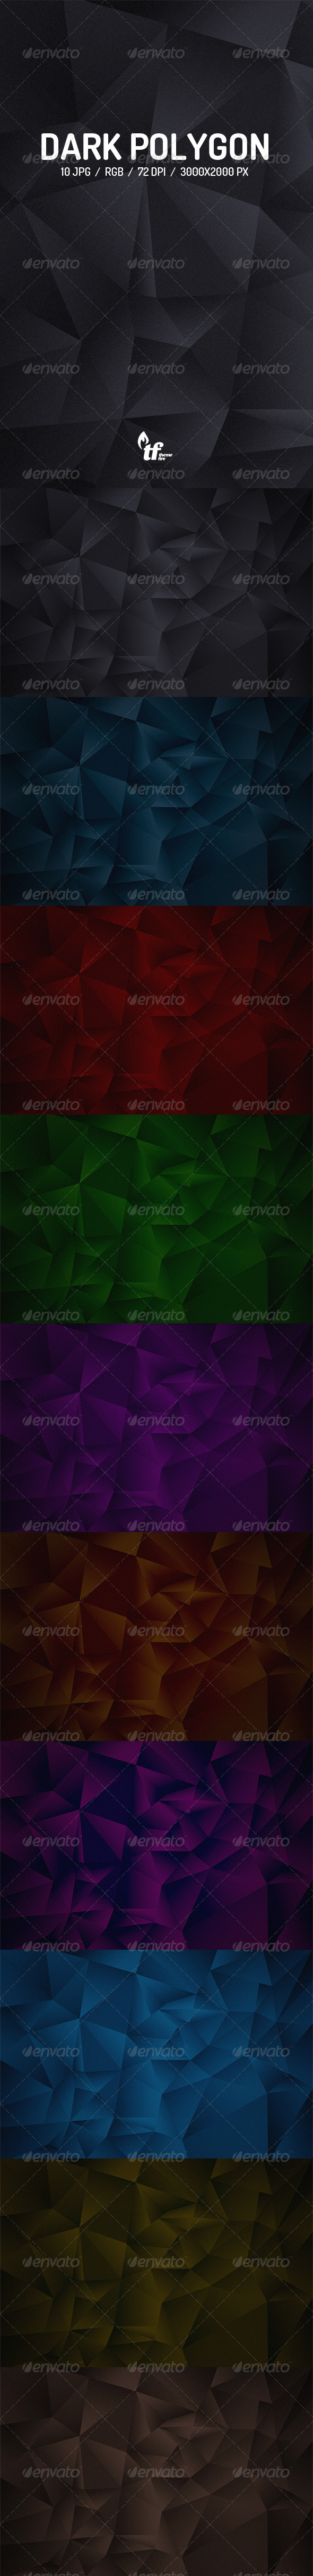 GraphicRiver Dark Polygon Backgrounds 7905725